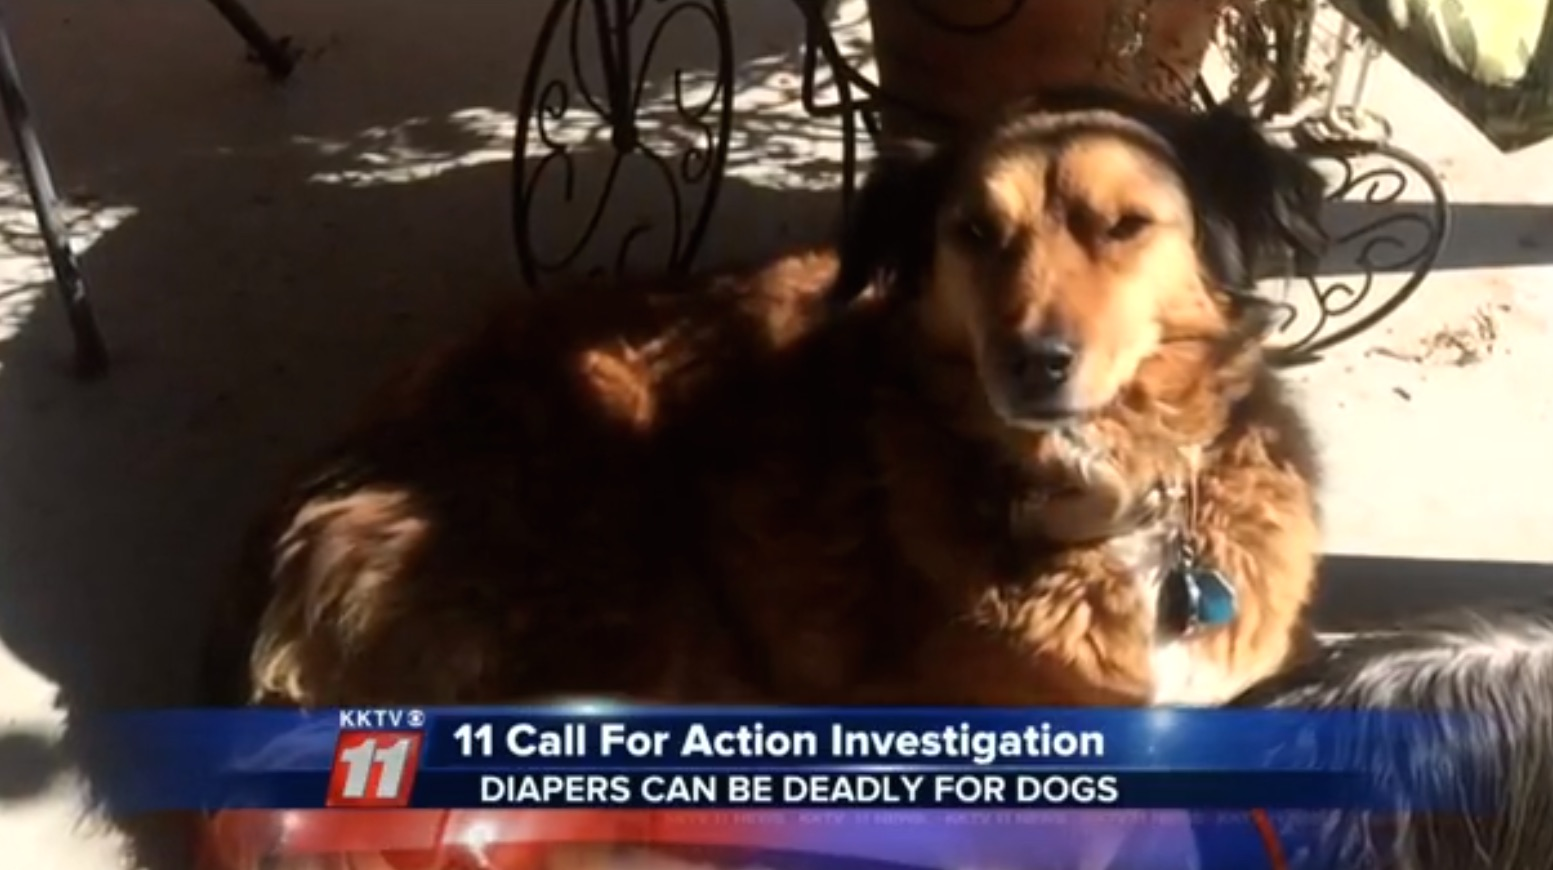 Ginger the dog died  after eating part of a baby's diaper.